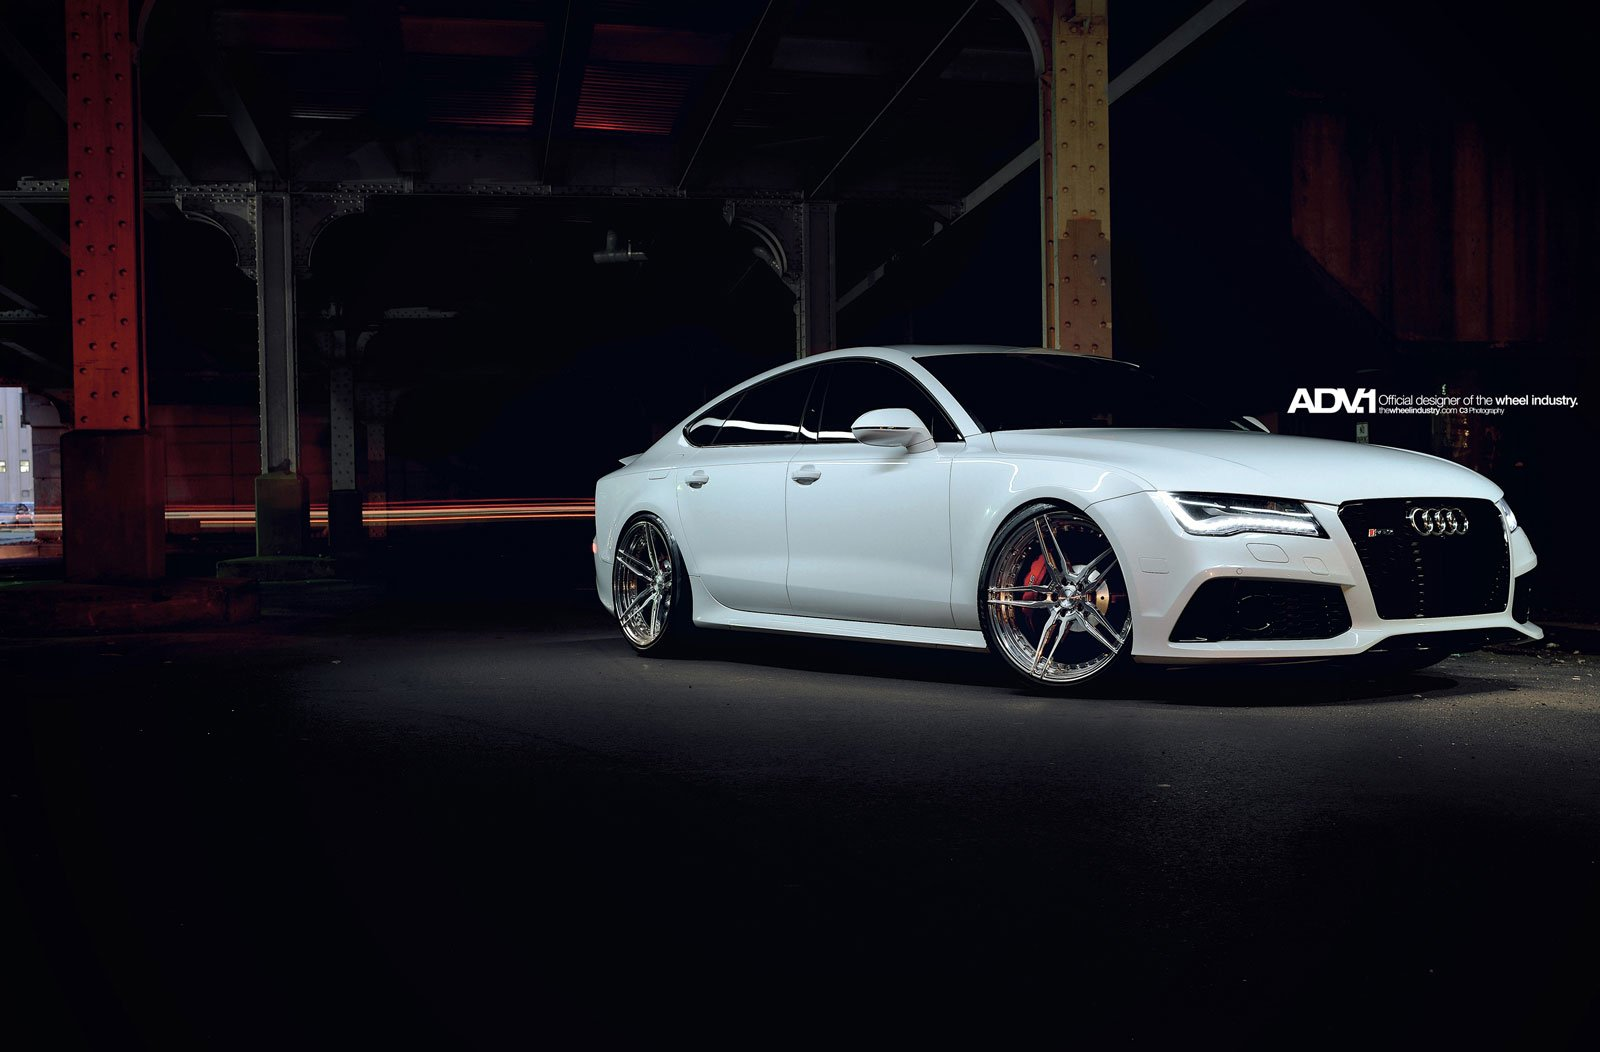 adv1 wheels audi rs7 coupe tuning white wallpaper. Black Bedroom Furniture Sets. Home Design Ideas